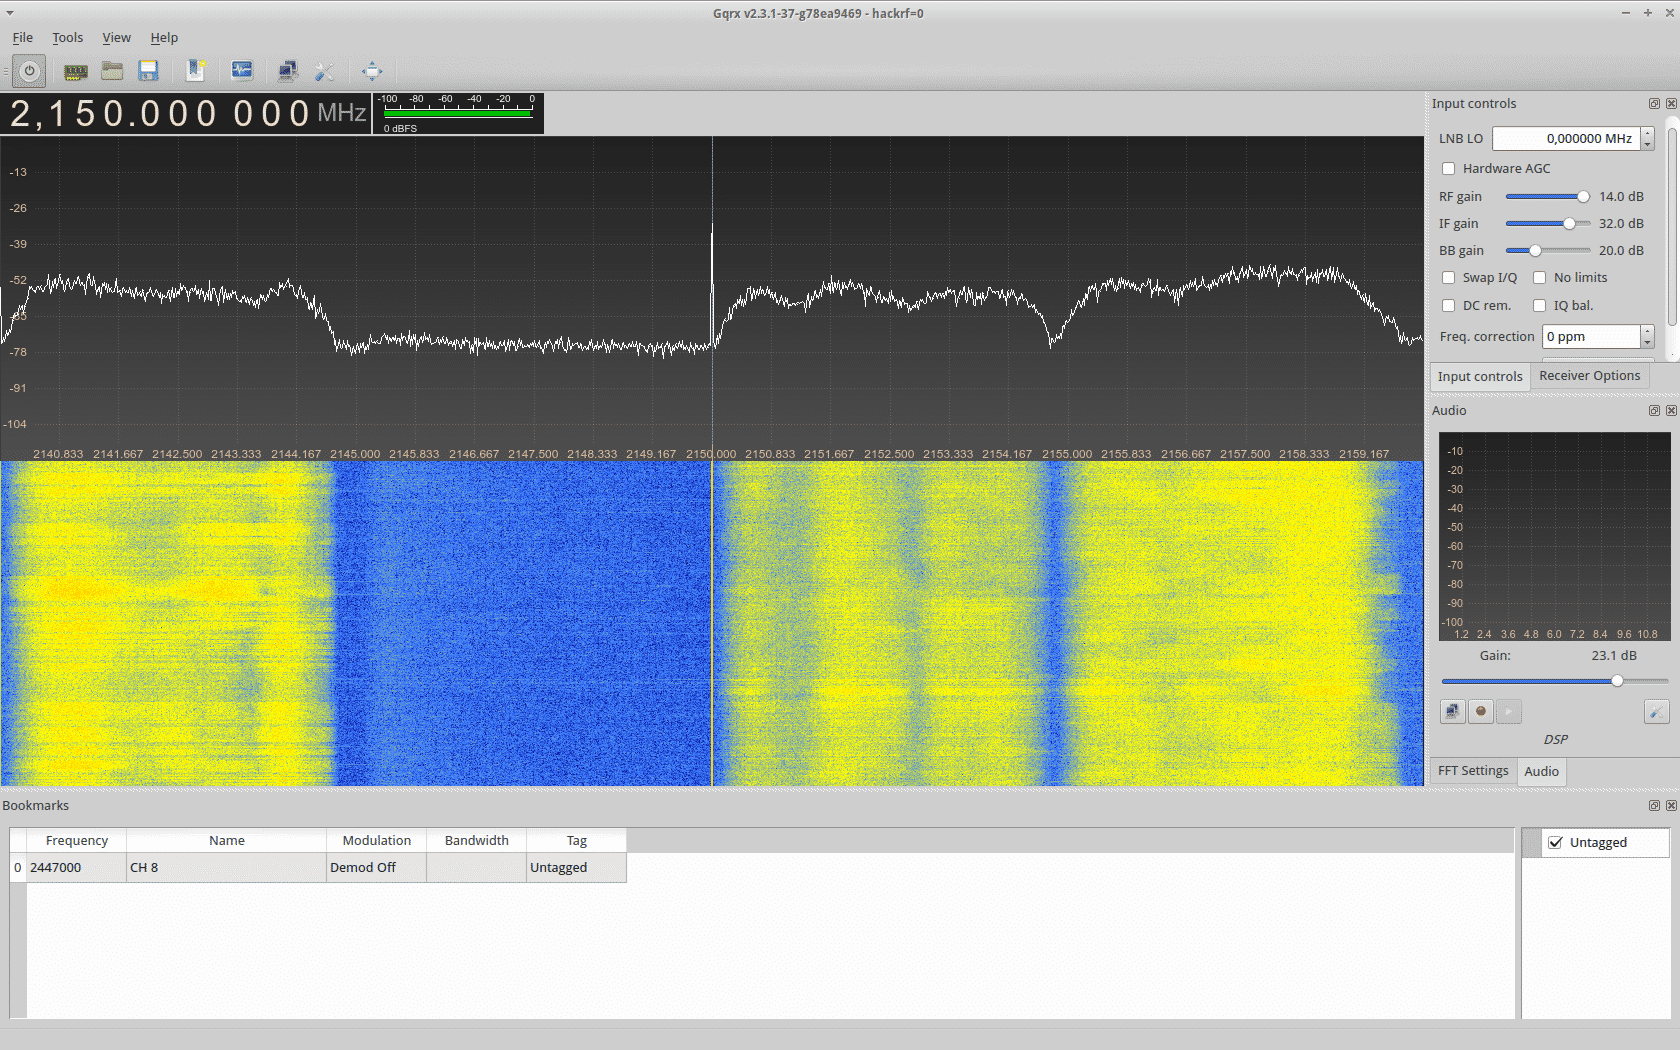 UMTS-Signale bei 2,15 GHz